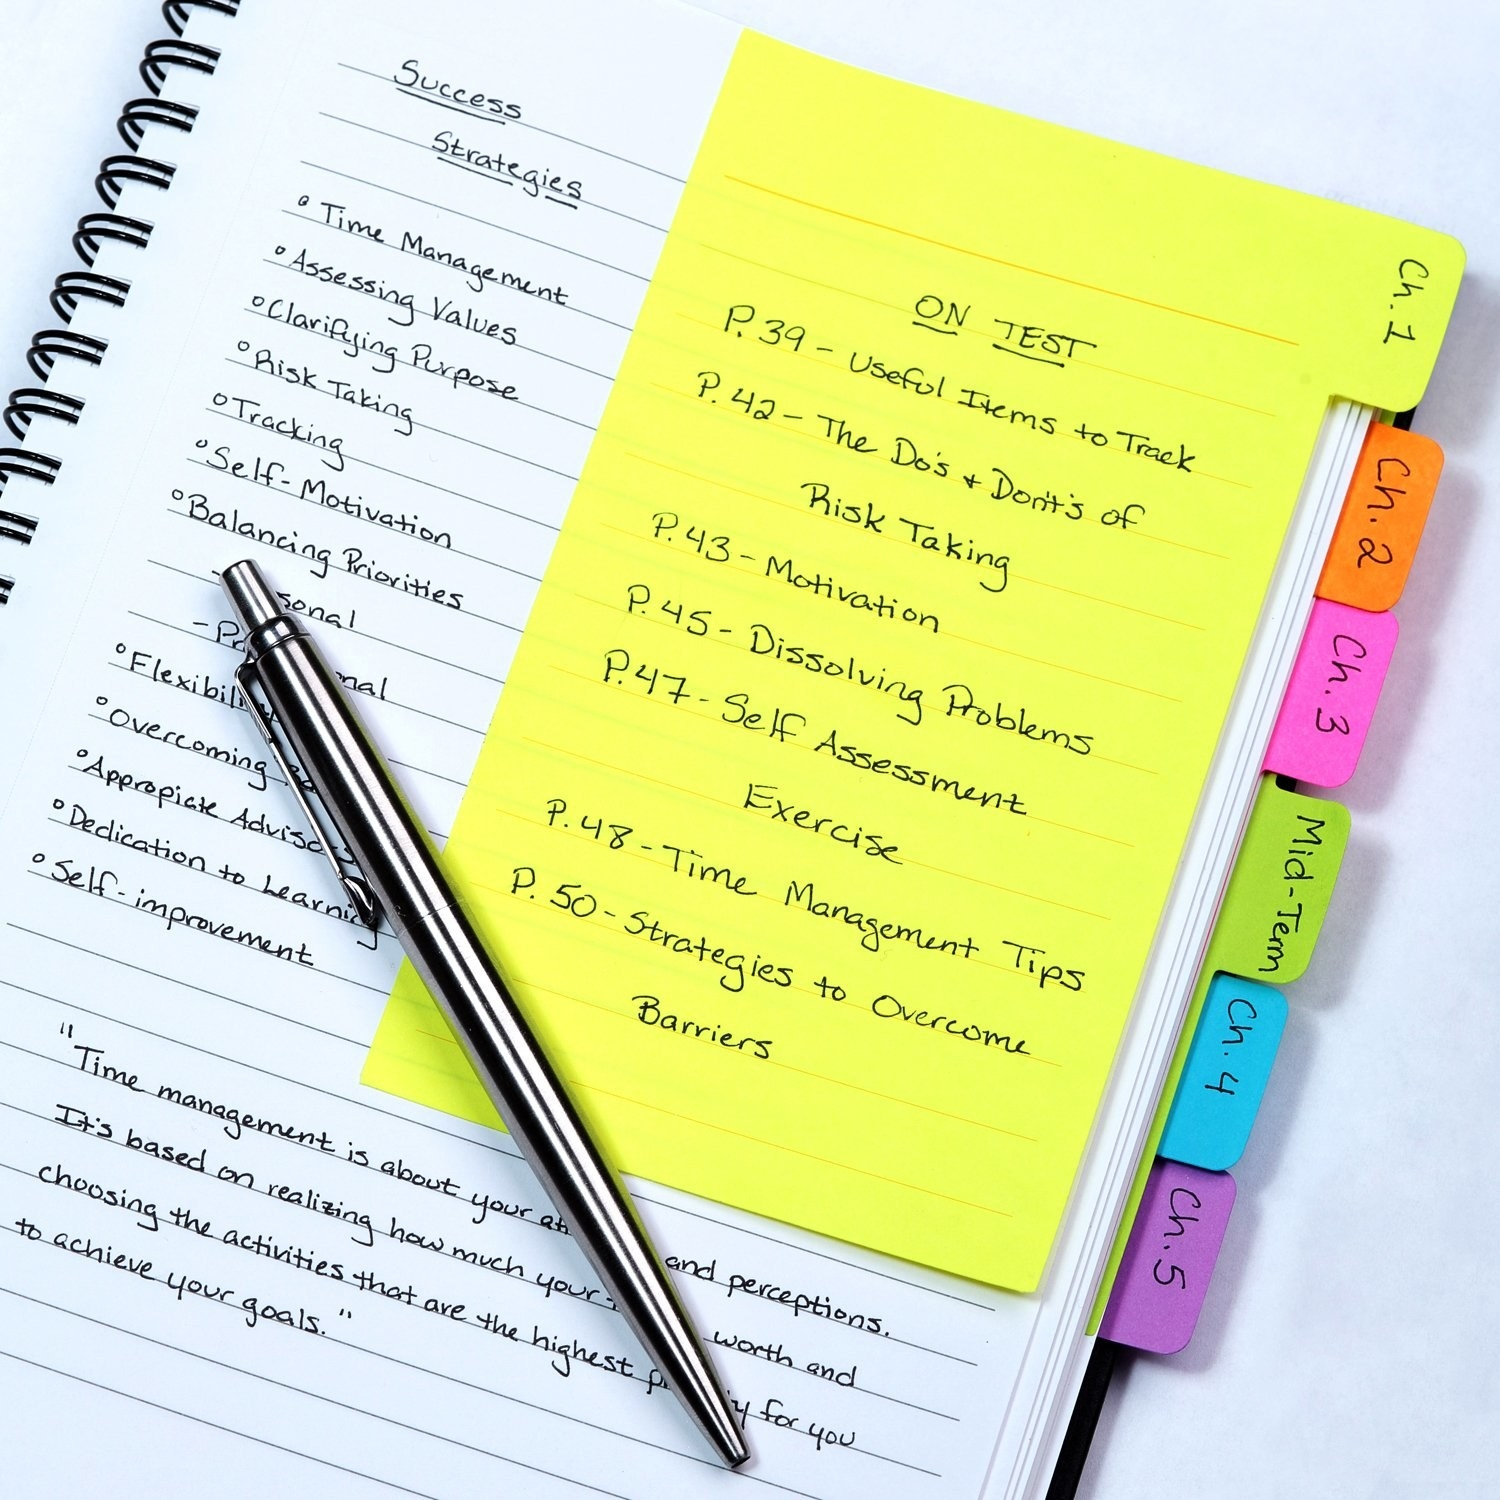 The dividers on a notebook, covered in notes